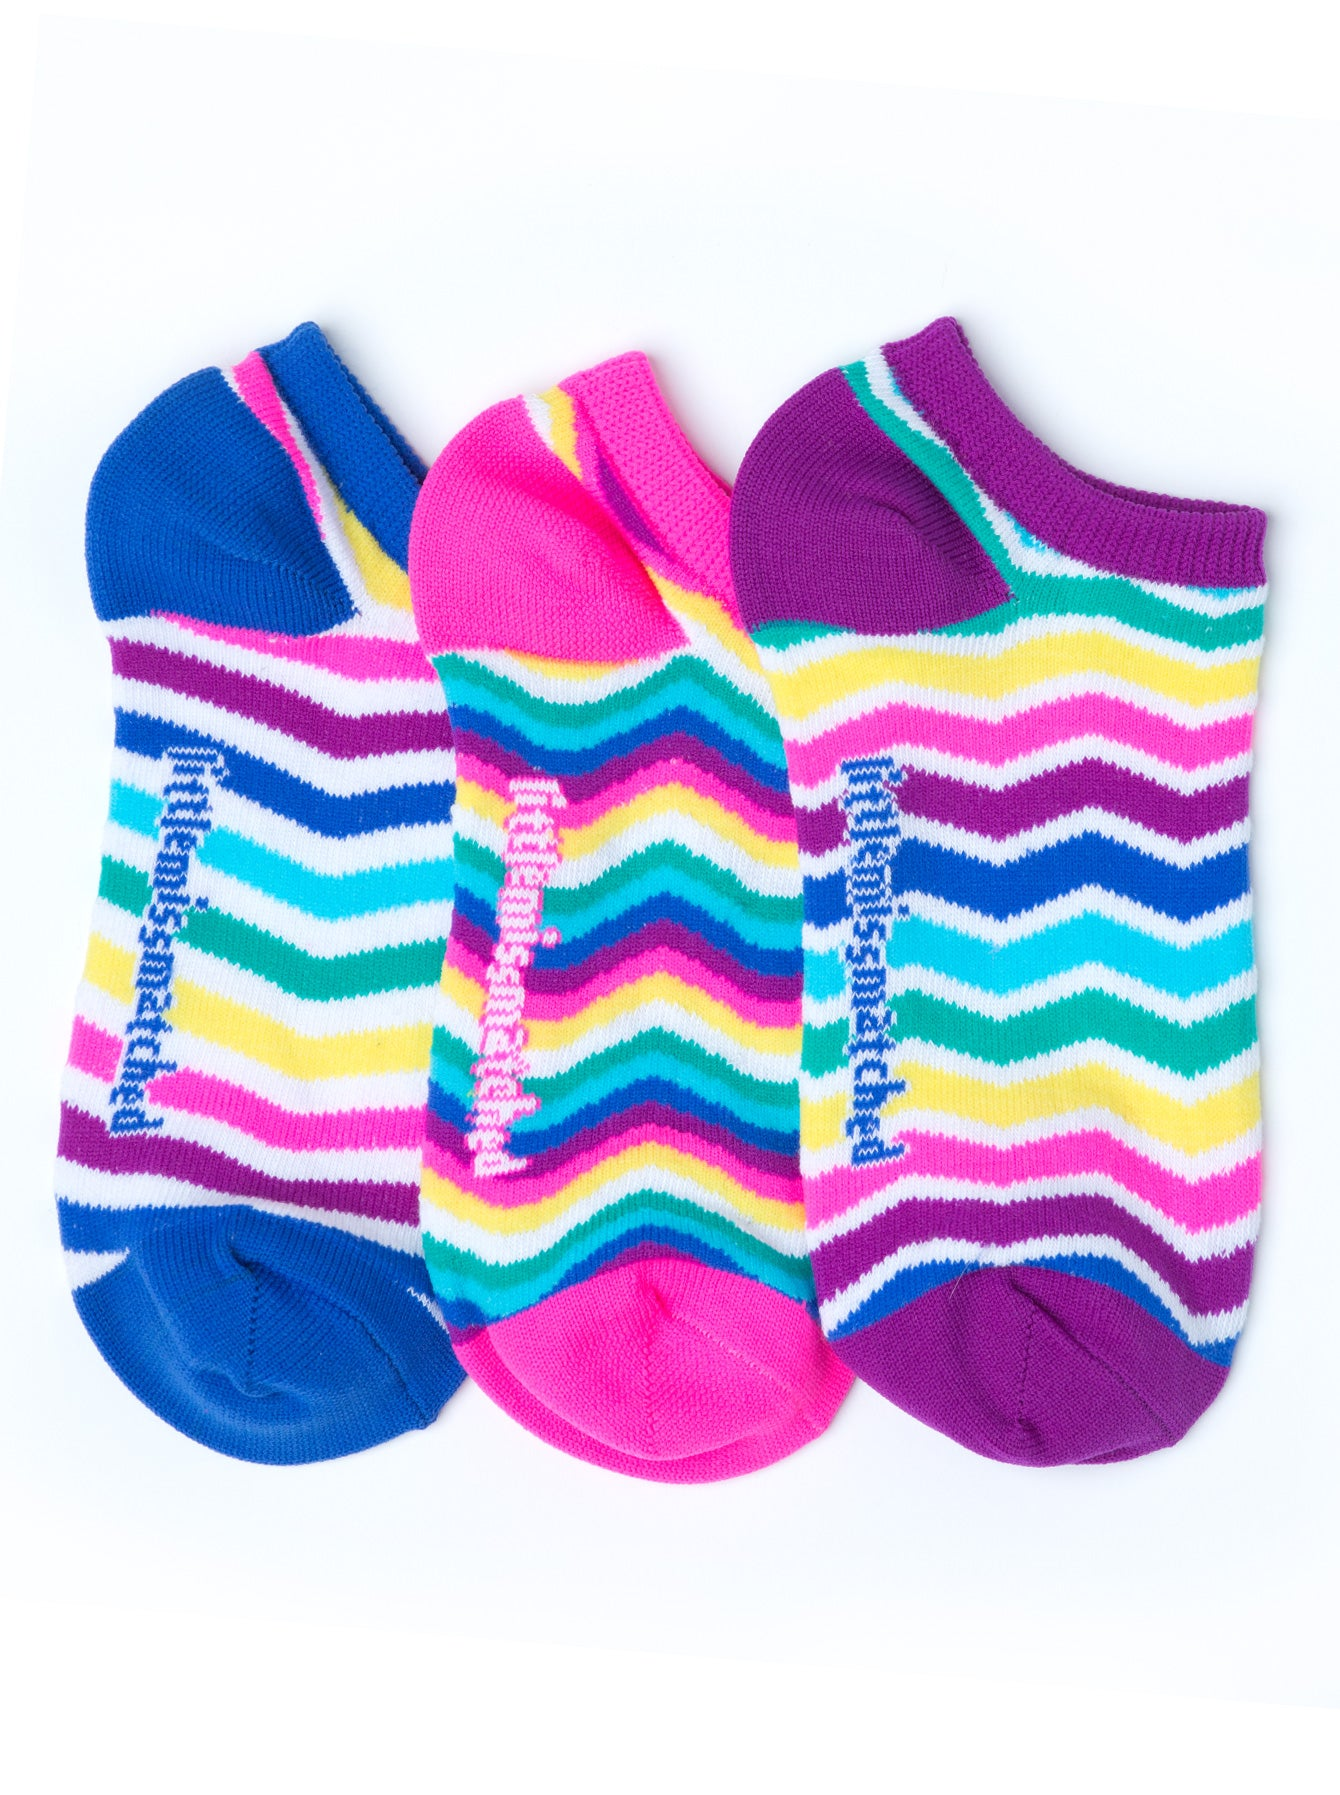 WAVY STRIPES LINER SOCKS